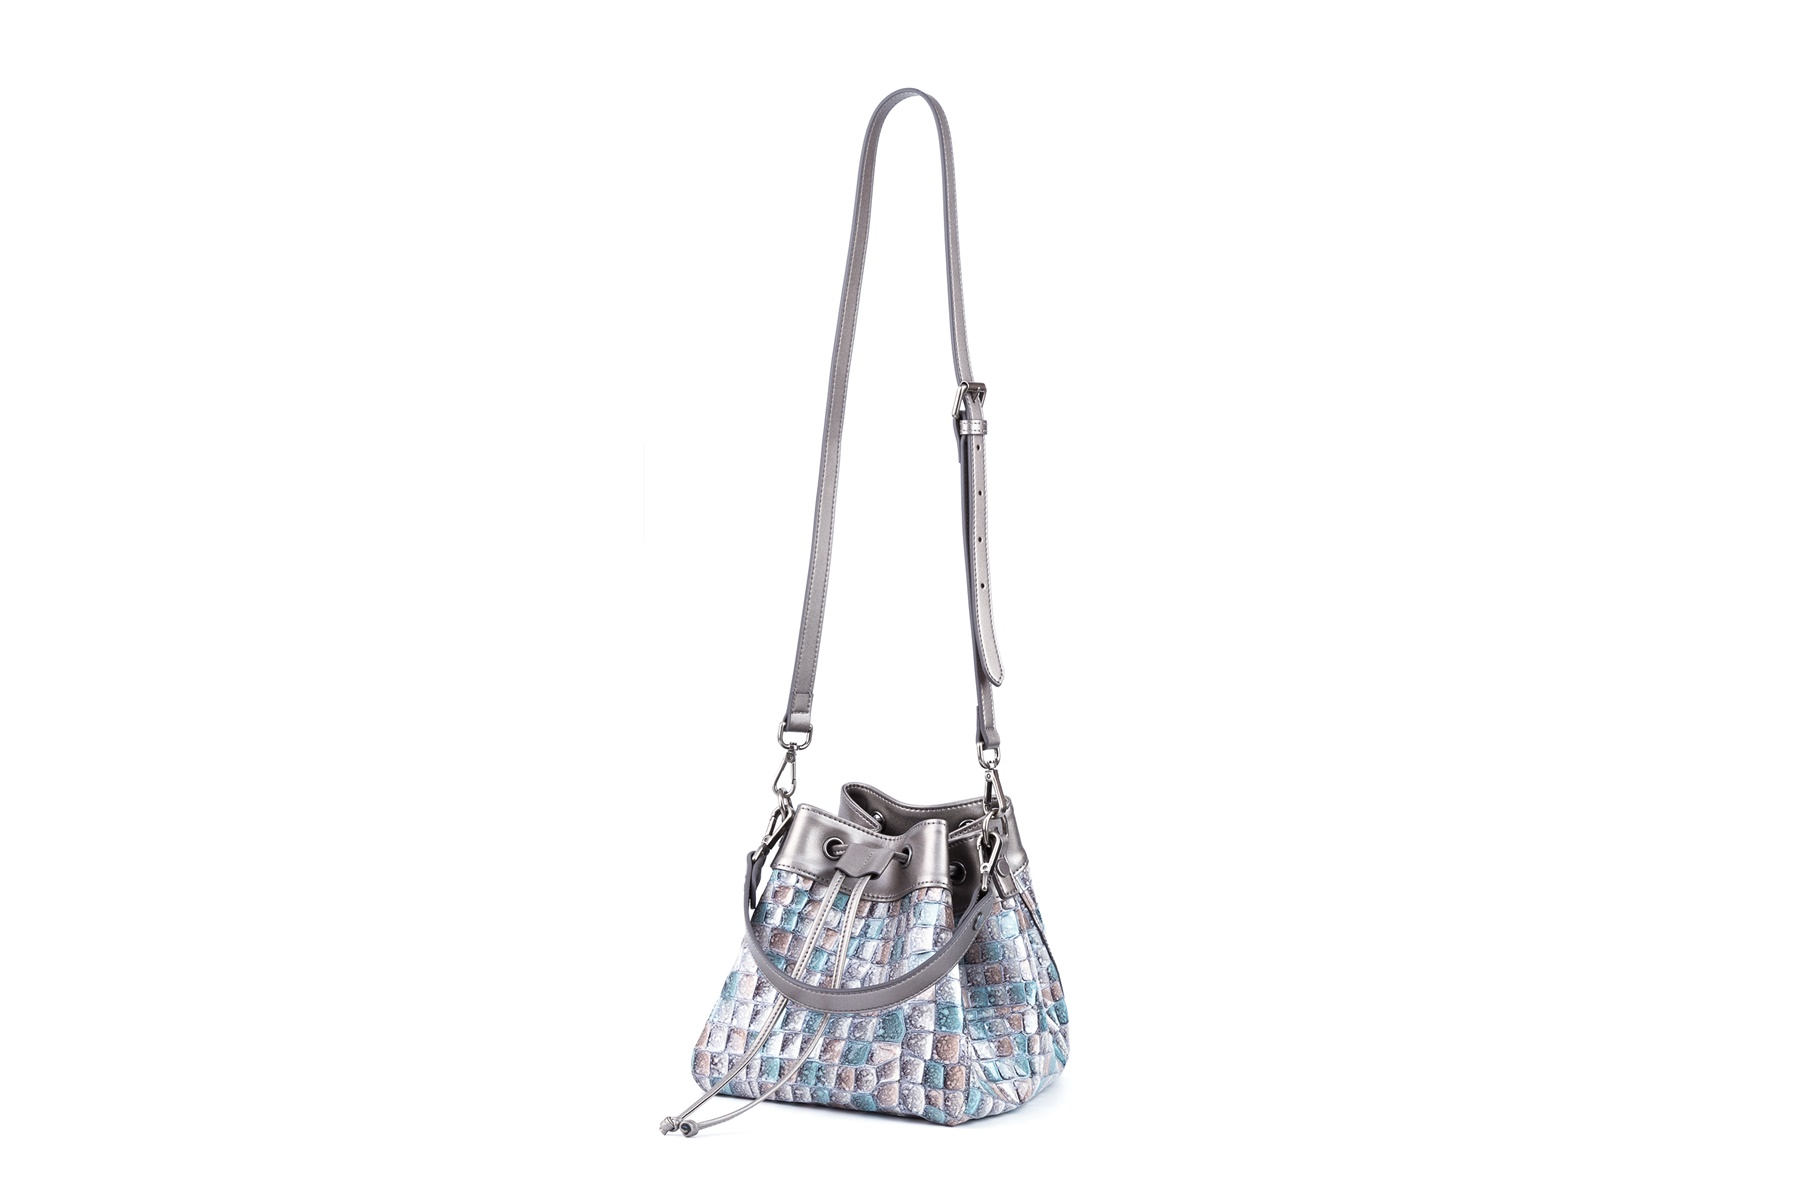 GF bags-Shoulder bag bucket shape drawstring strap handle-1